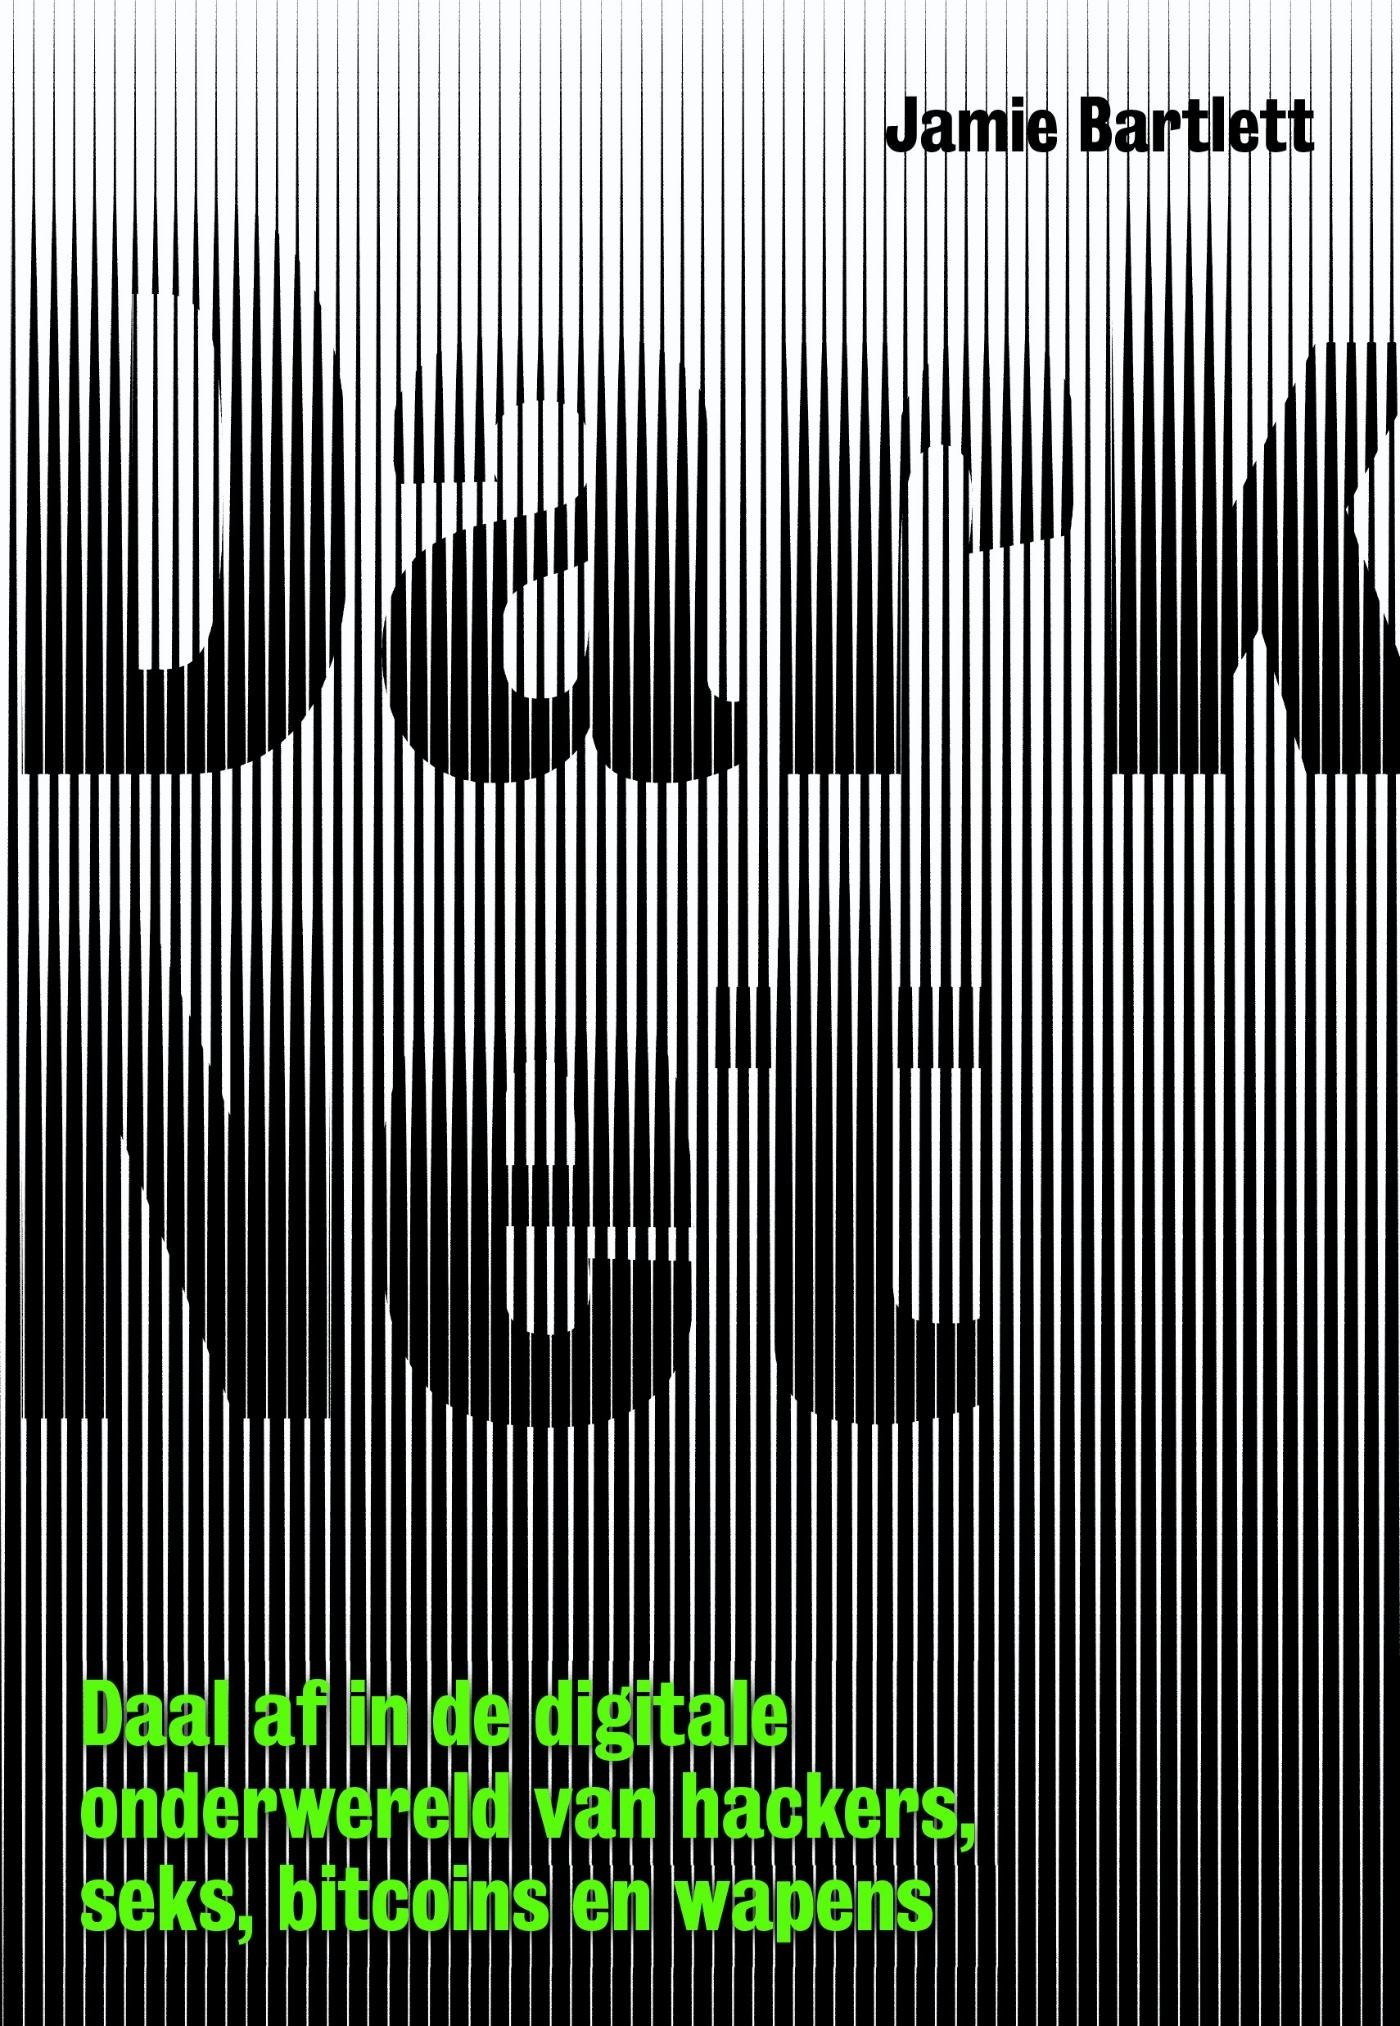 Dark net – Jamie Bartlett